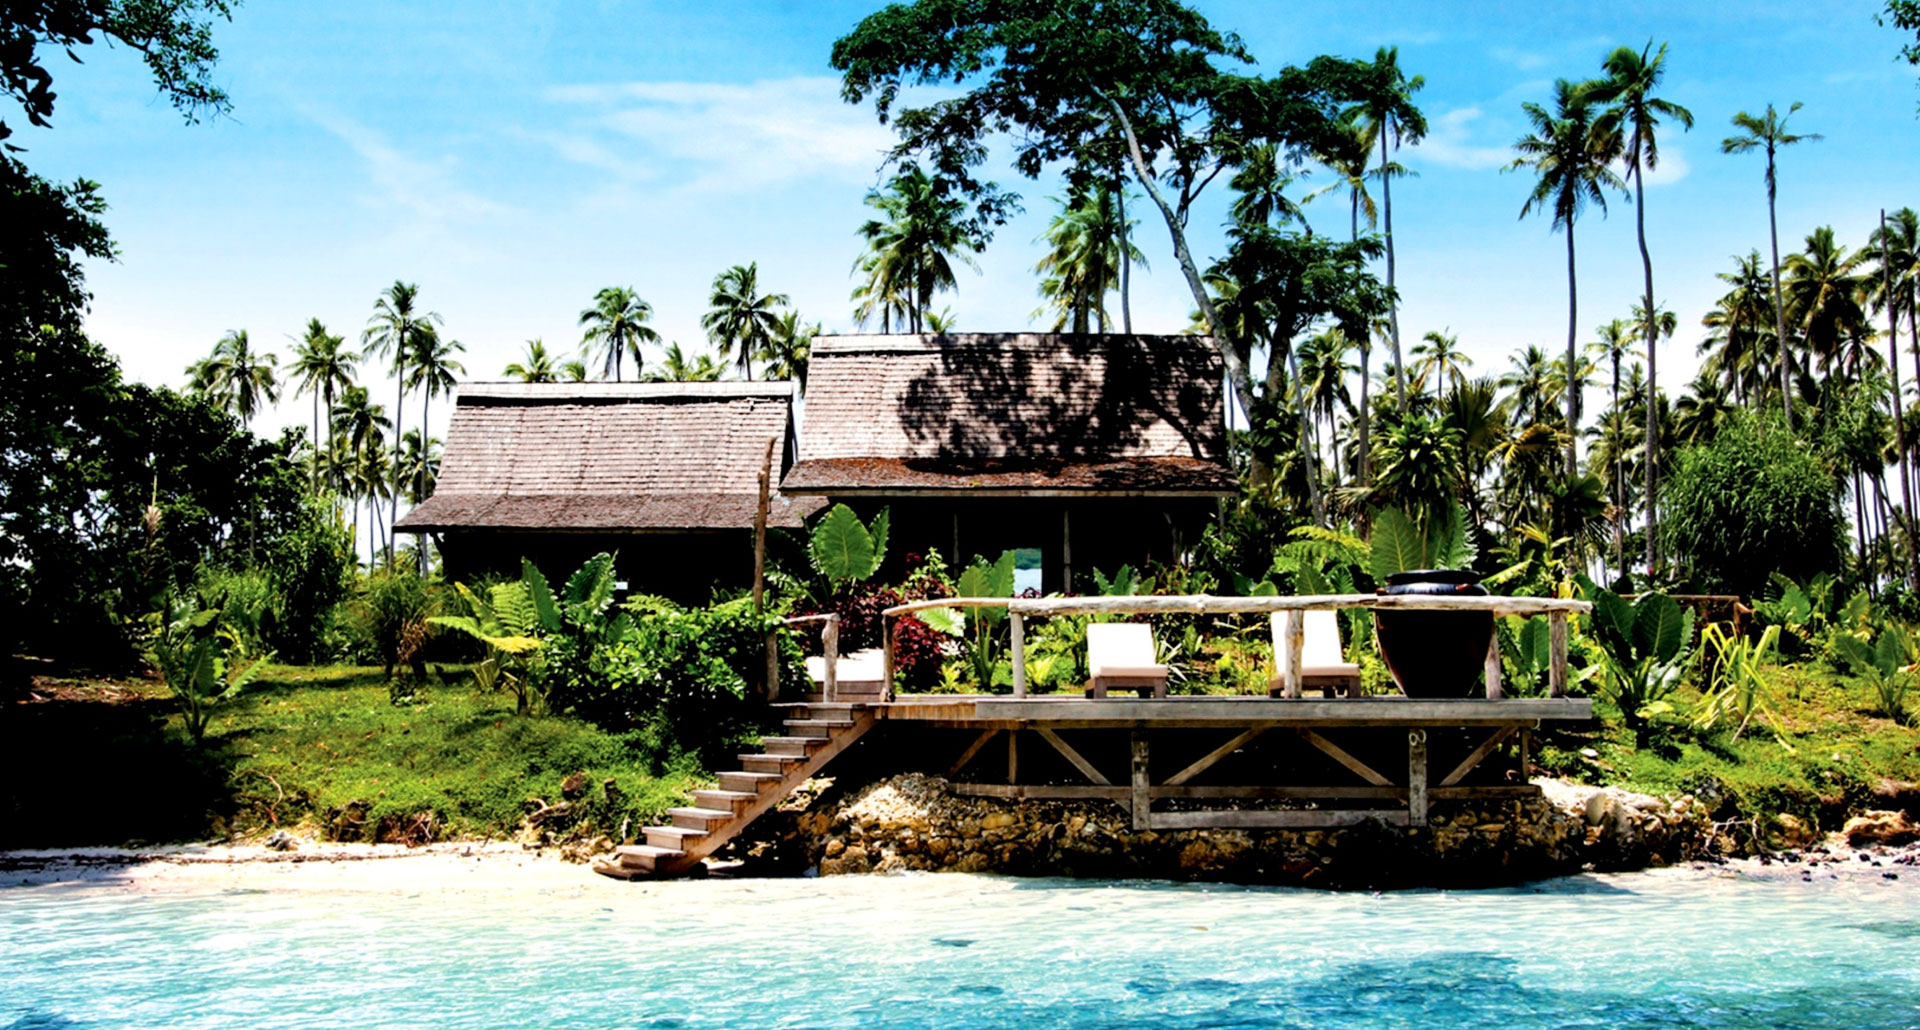 Ratua Private Island - boutique hotel in Luganville